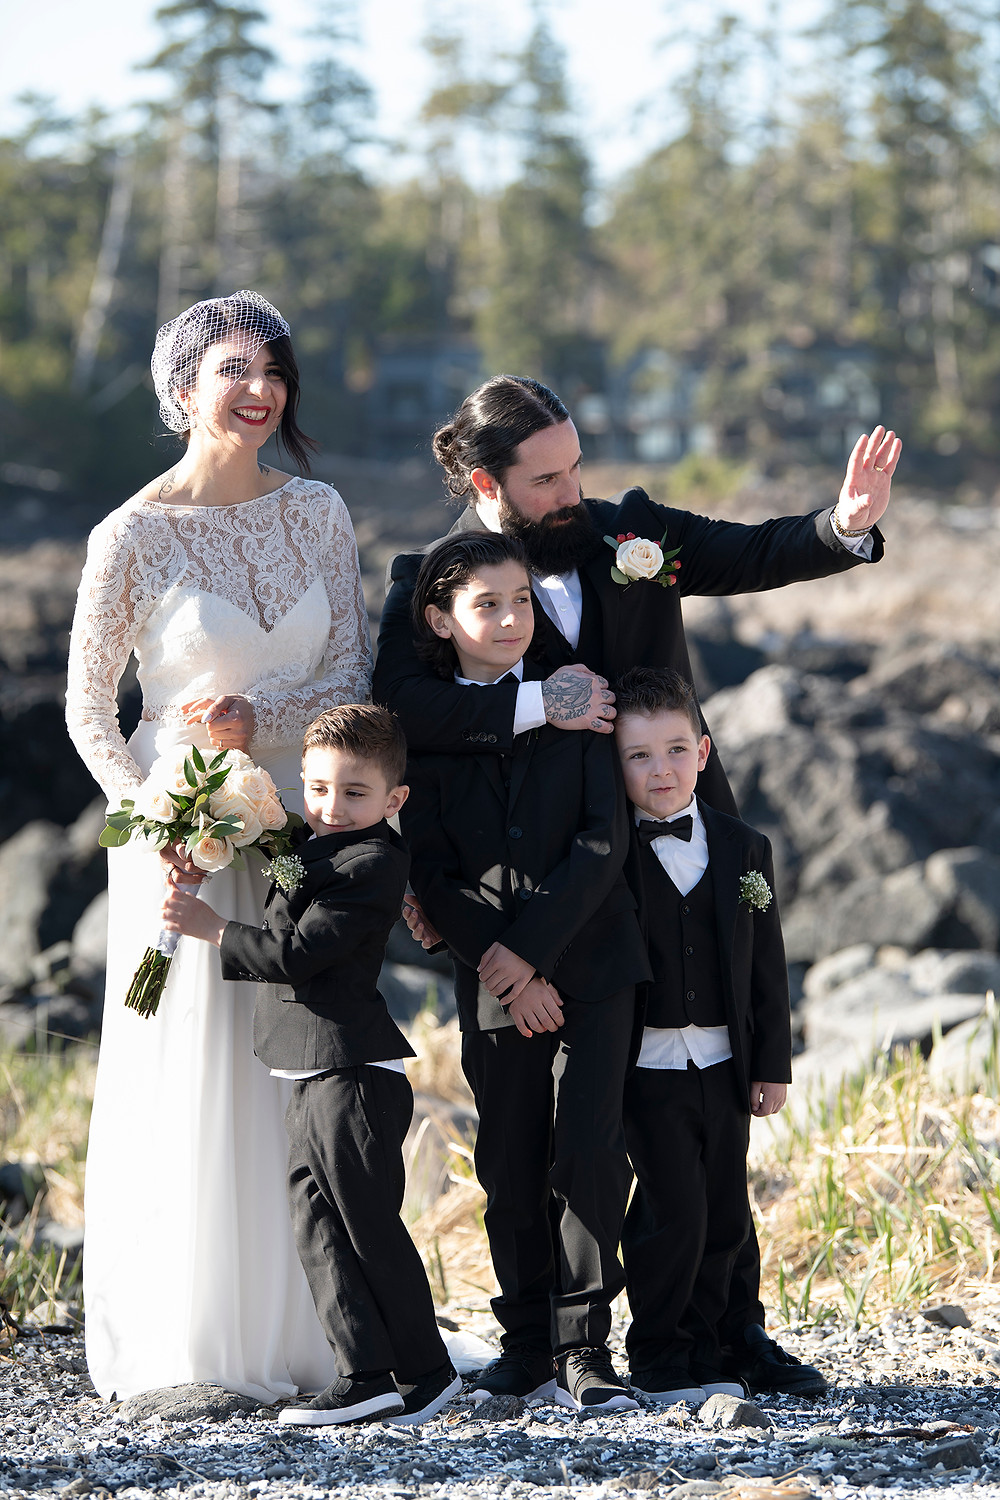 Family smiling in the sun at Elopement in Ucluelet. Photographed by Kaitlyn Shea.